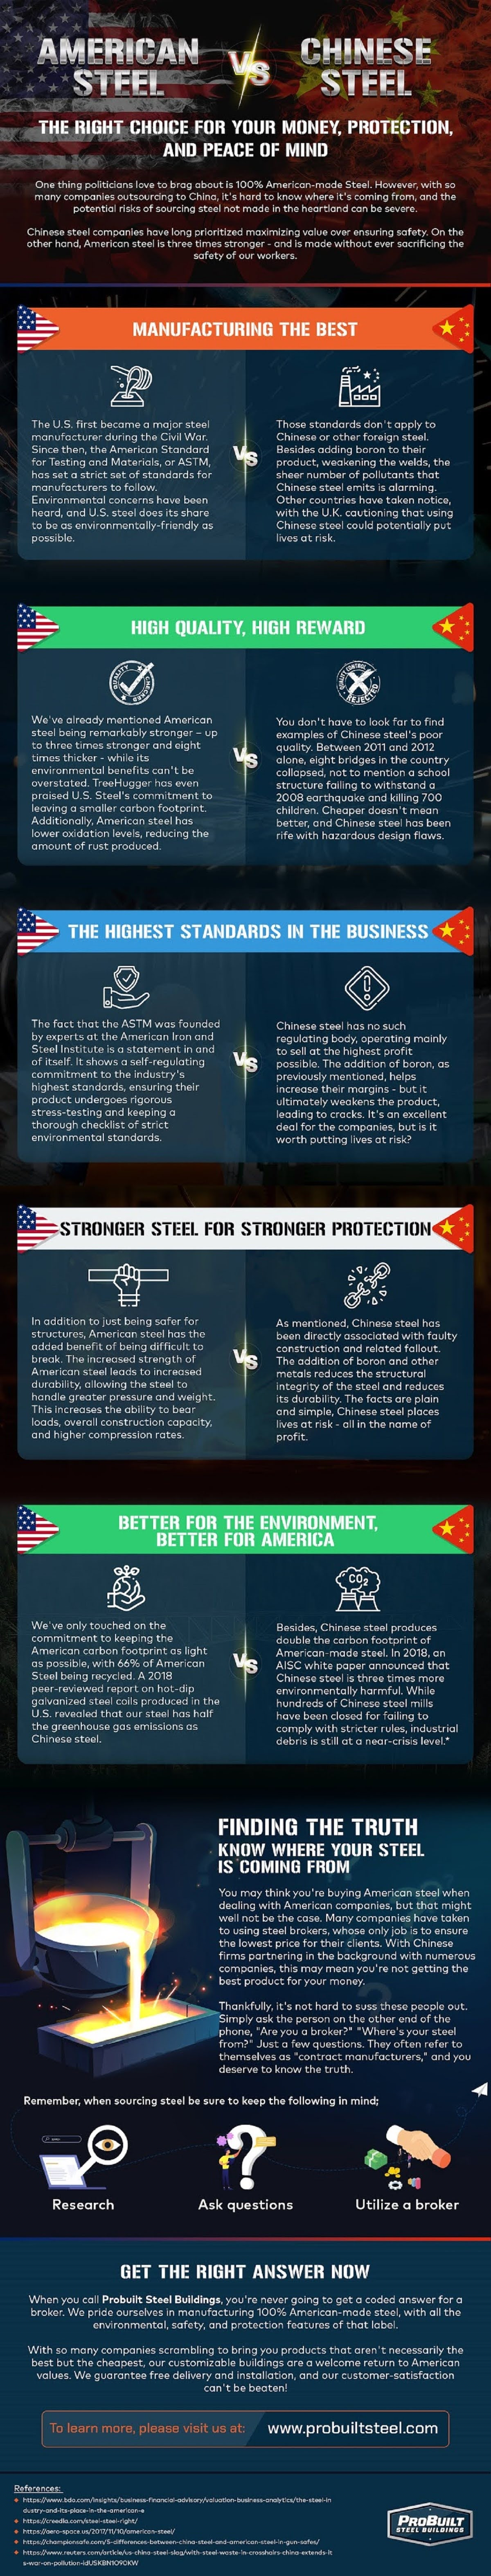 american-vs-chinese-steel-patriotism-and-safety-over-price-infographic